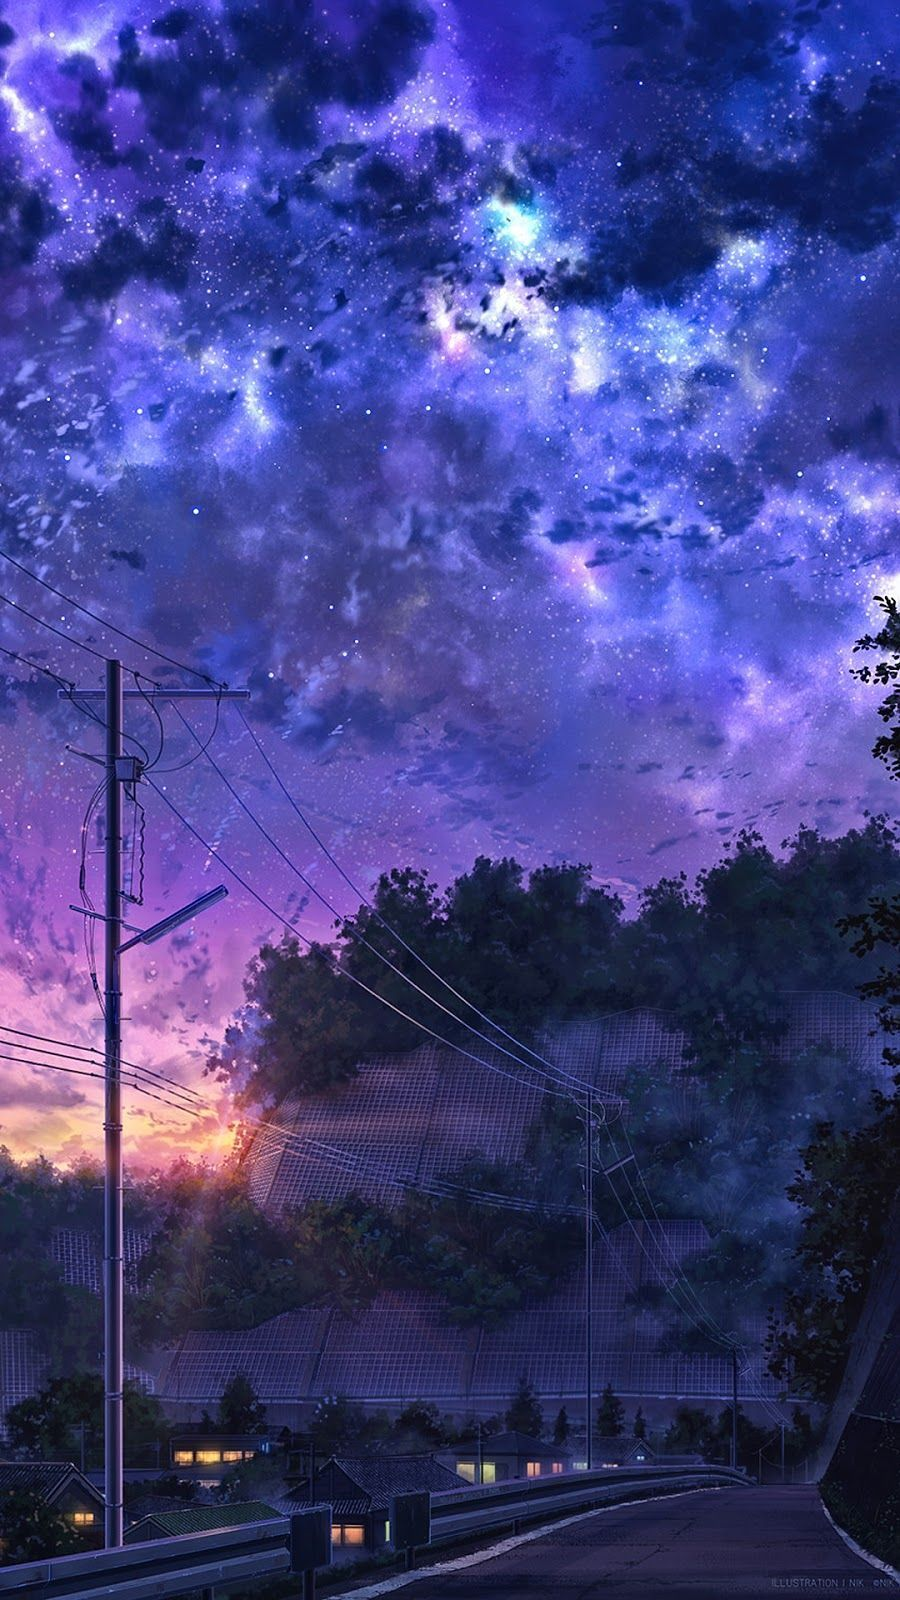 Silent Night Laineys Pins Scenery Wallpaper Sky Anime Anime Backgrounds Wallpapers